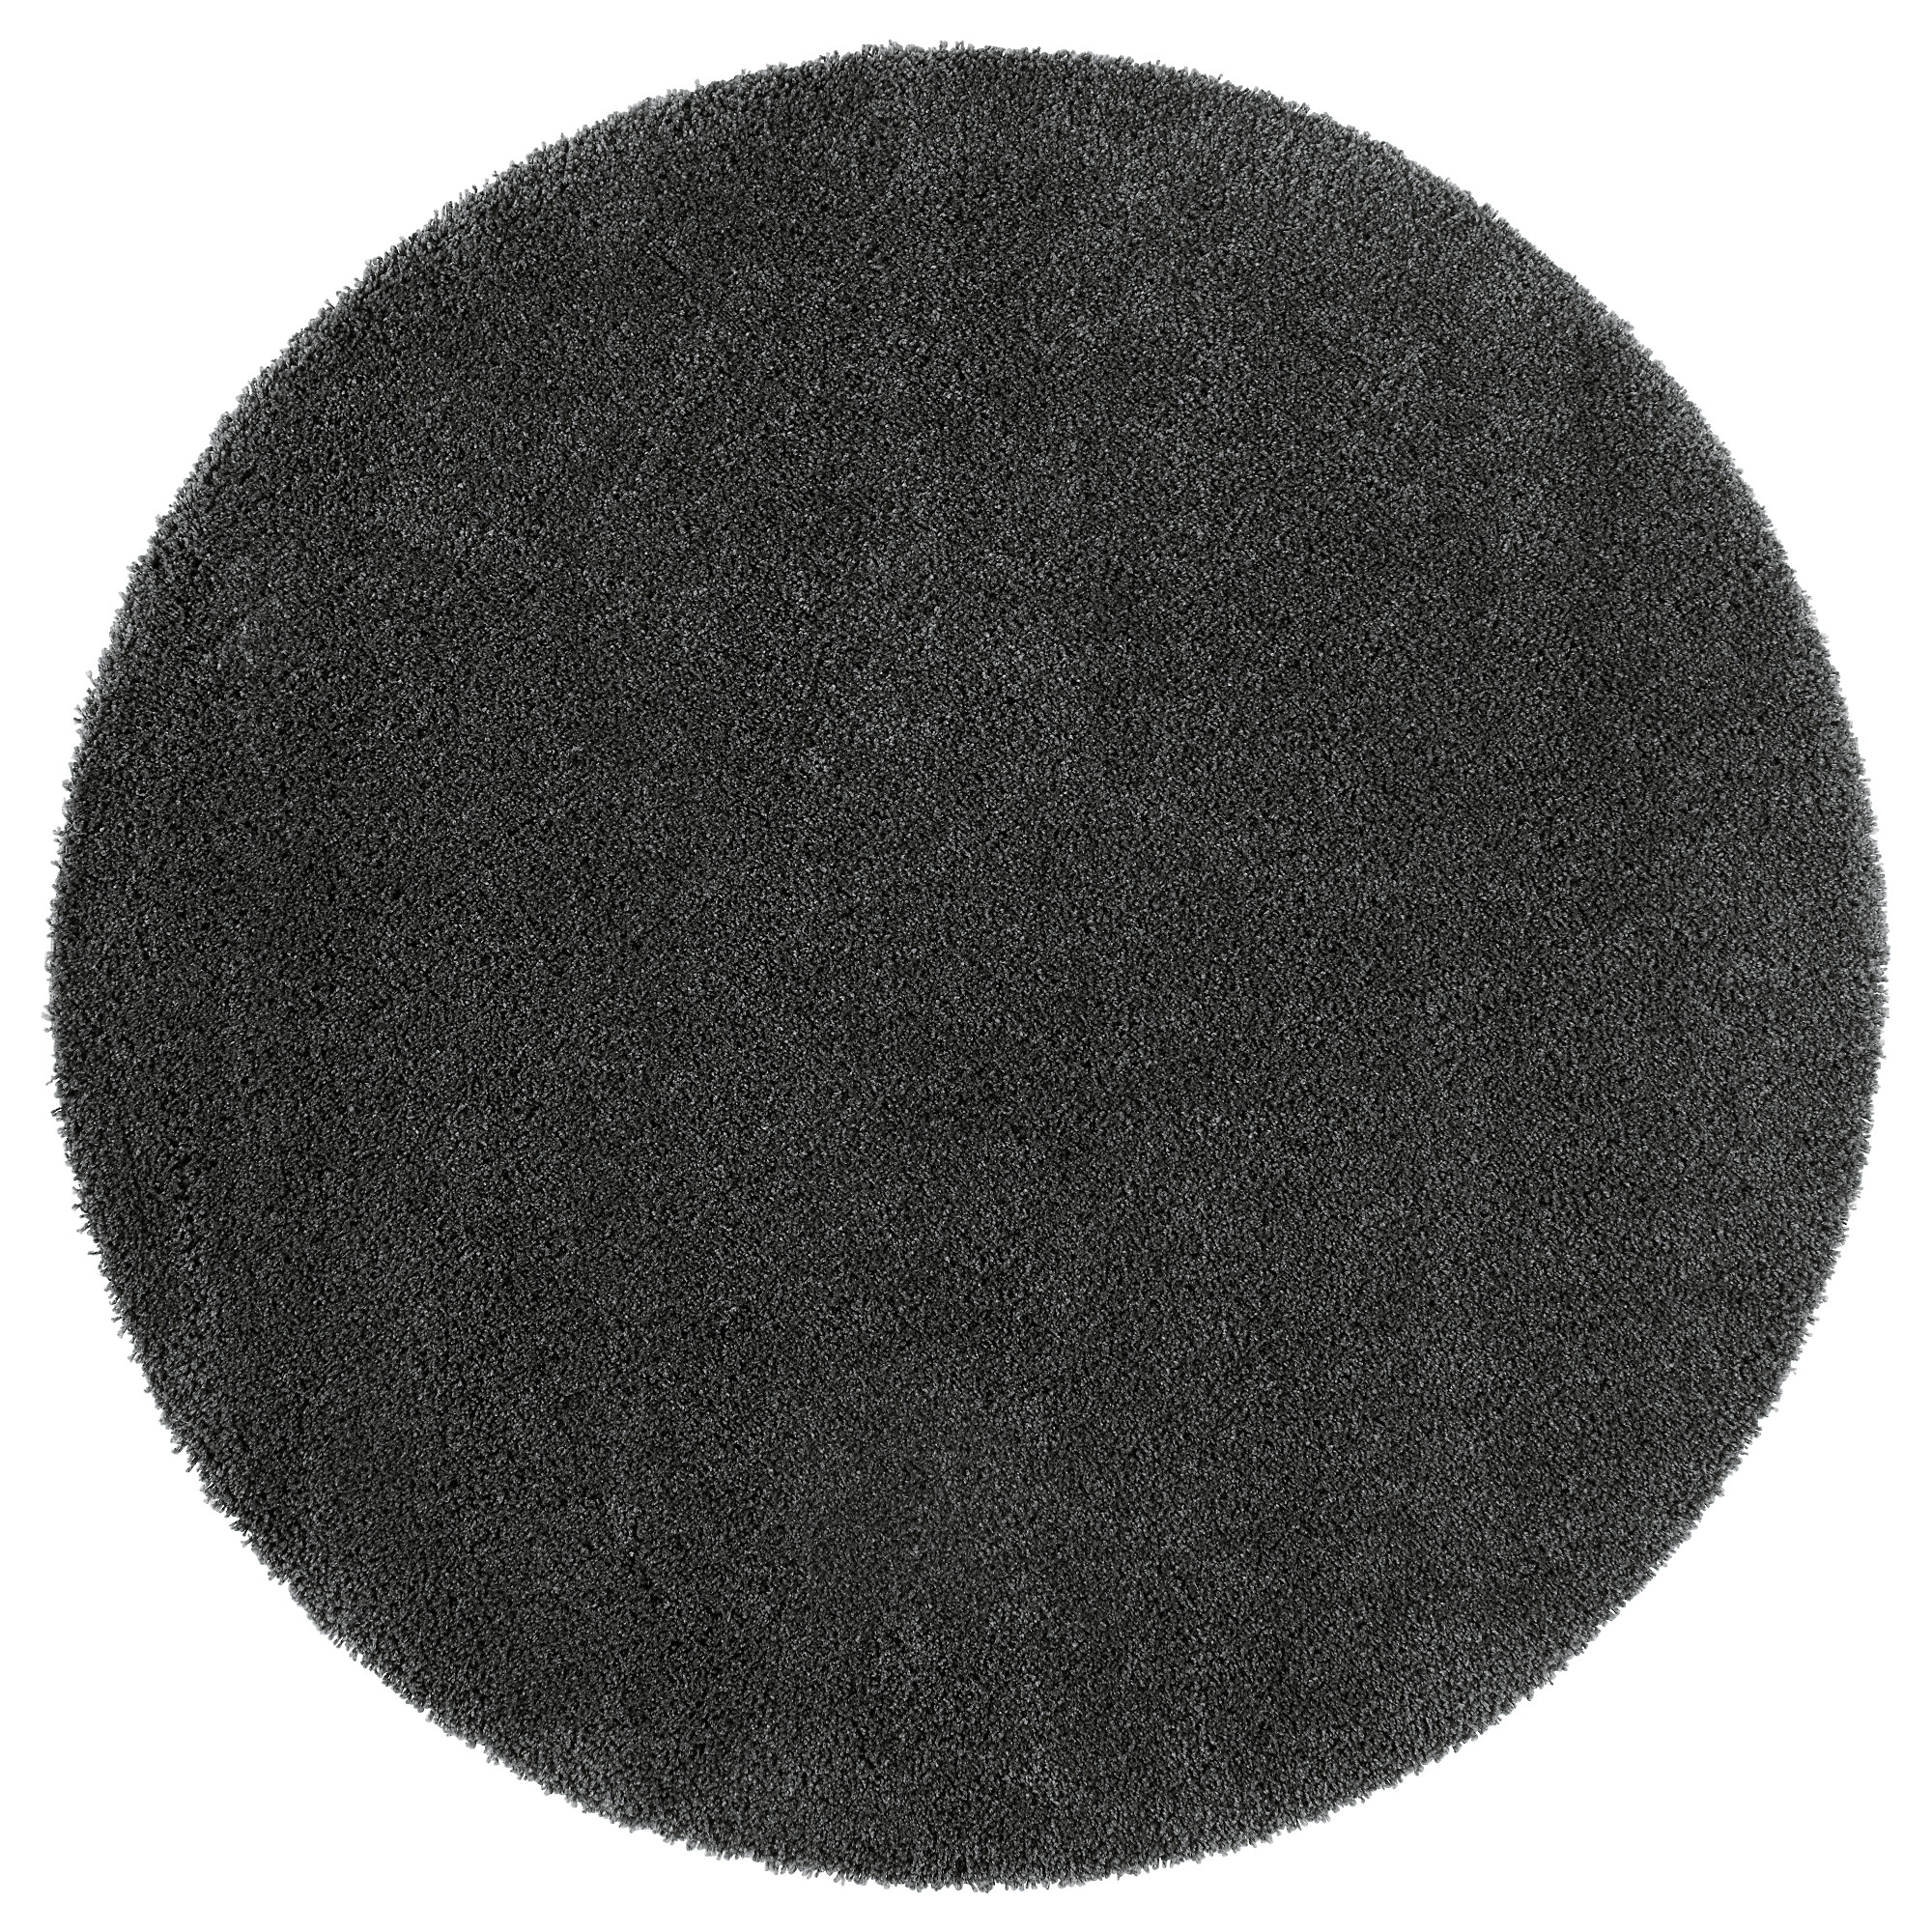 Round Rugs Ikea Intended For Round Mats Rugs (Image 13 of 15)